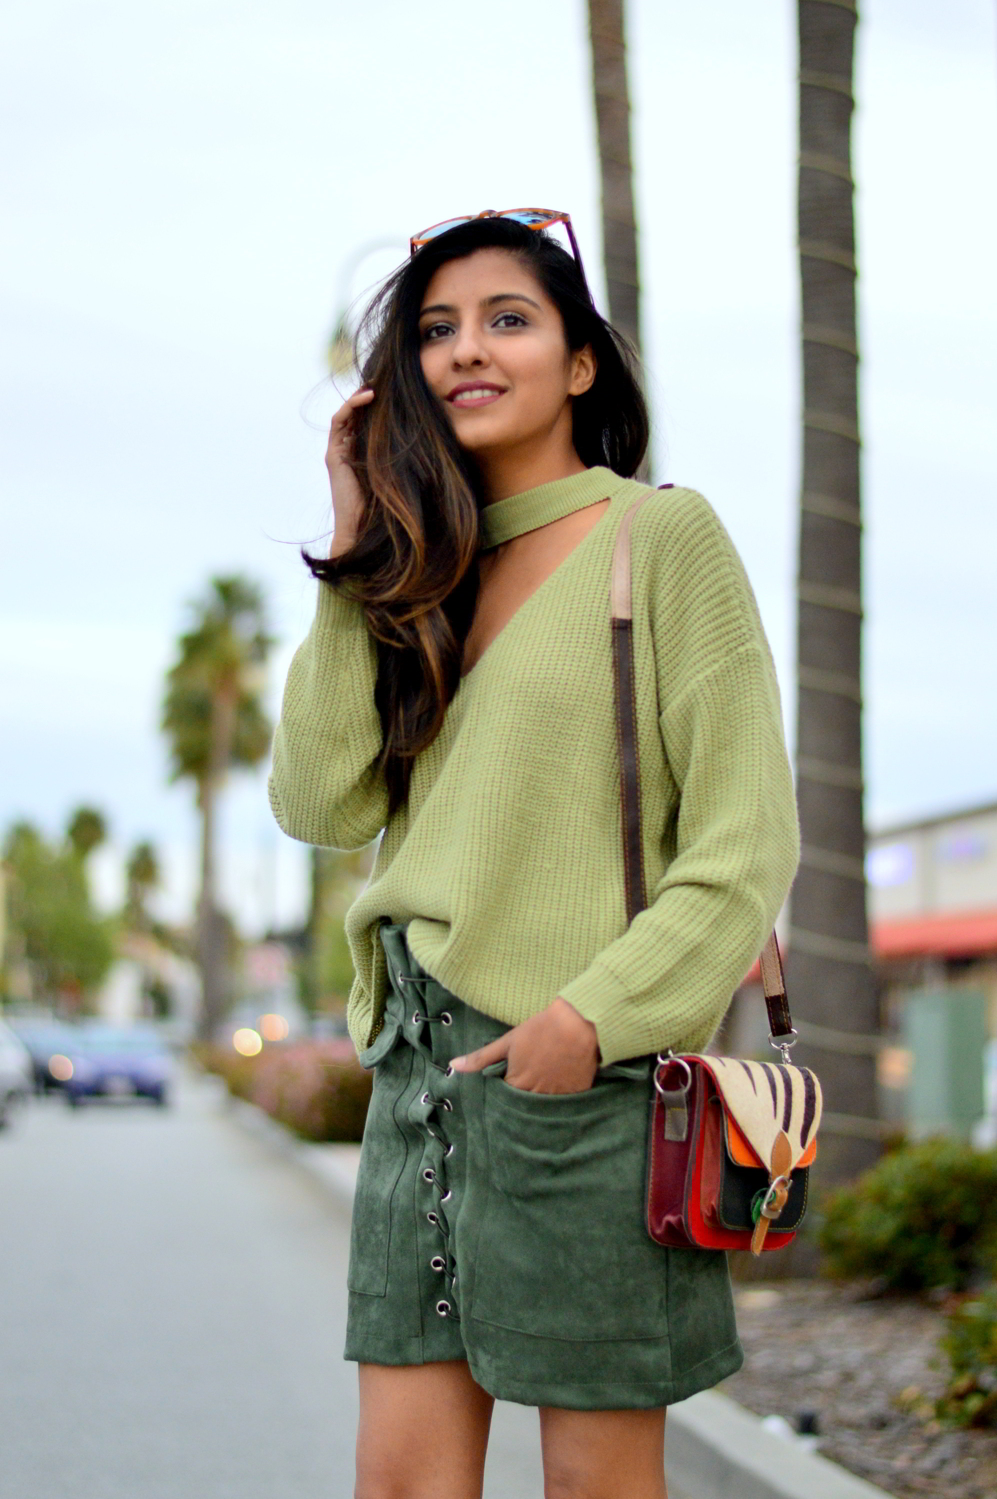 monochrome-green-choker-sweater-suede-lace-up-skirt-spring-blogger-fashion 2